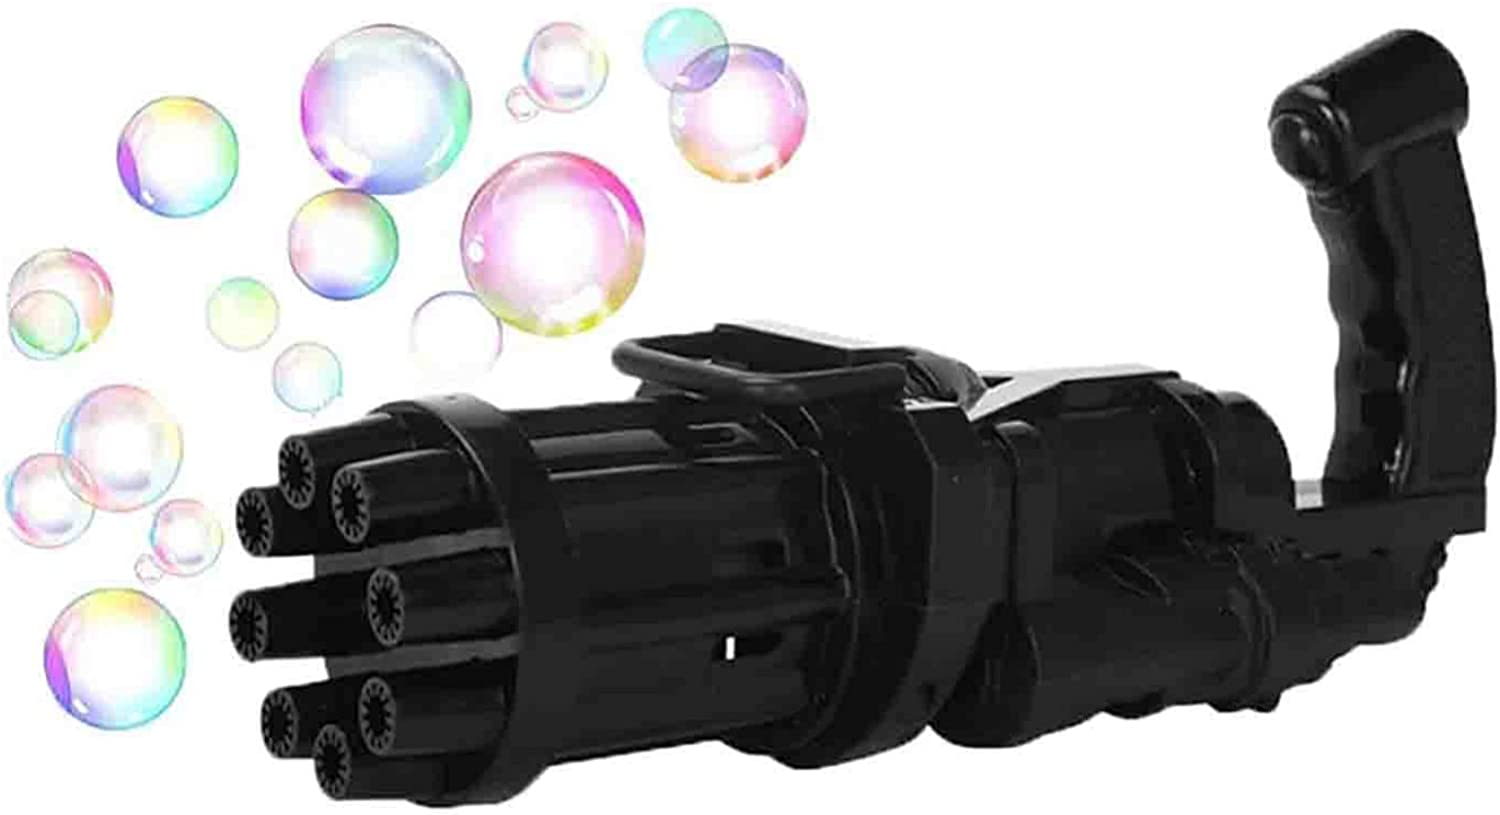 Bubble Machine Durable Automatic Blower indoor Ranking TOP4 Max 88% OFF outd for Summer